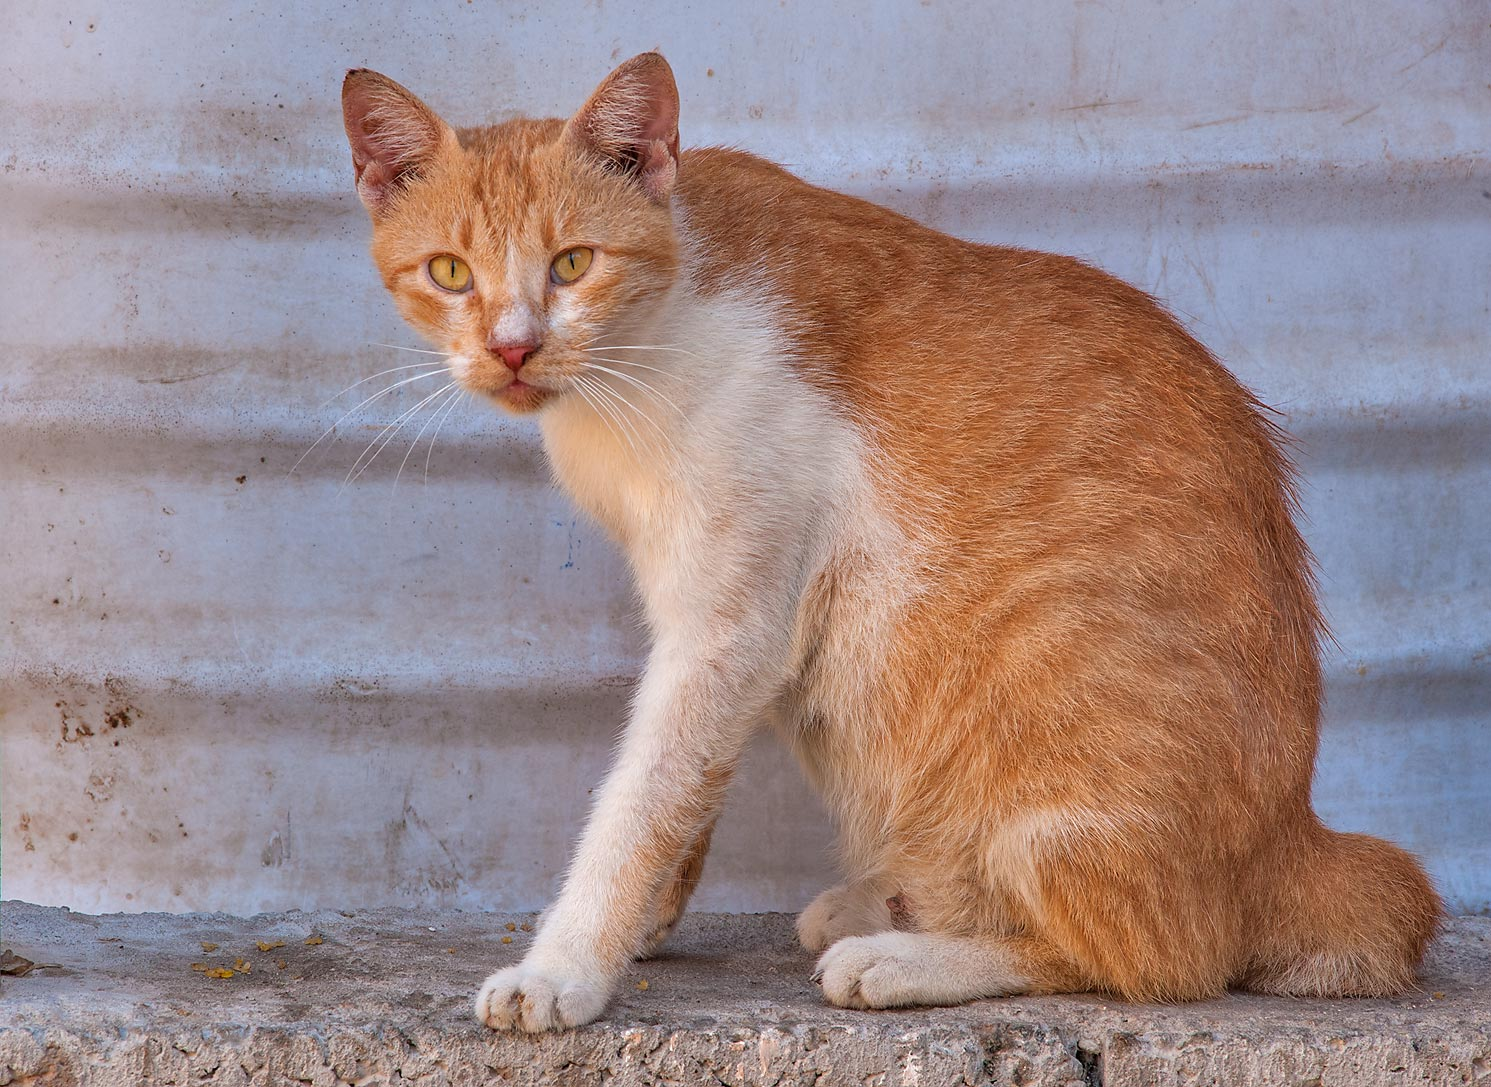 Groomed brown cat on Abdullah Bin Thani St. in Musheirib (Msheireb) area. Doha, Qatar